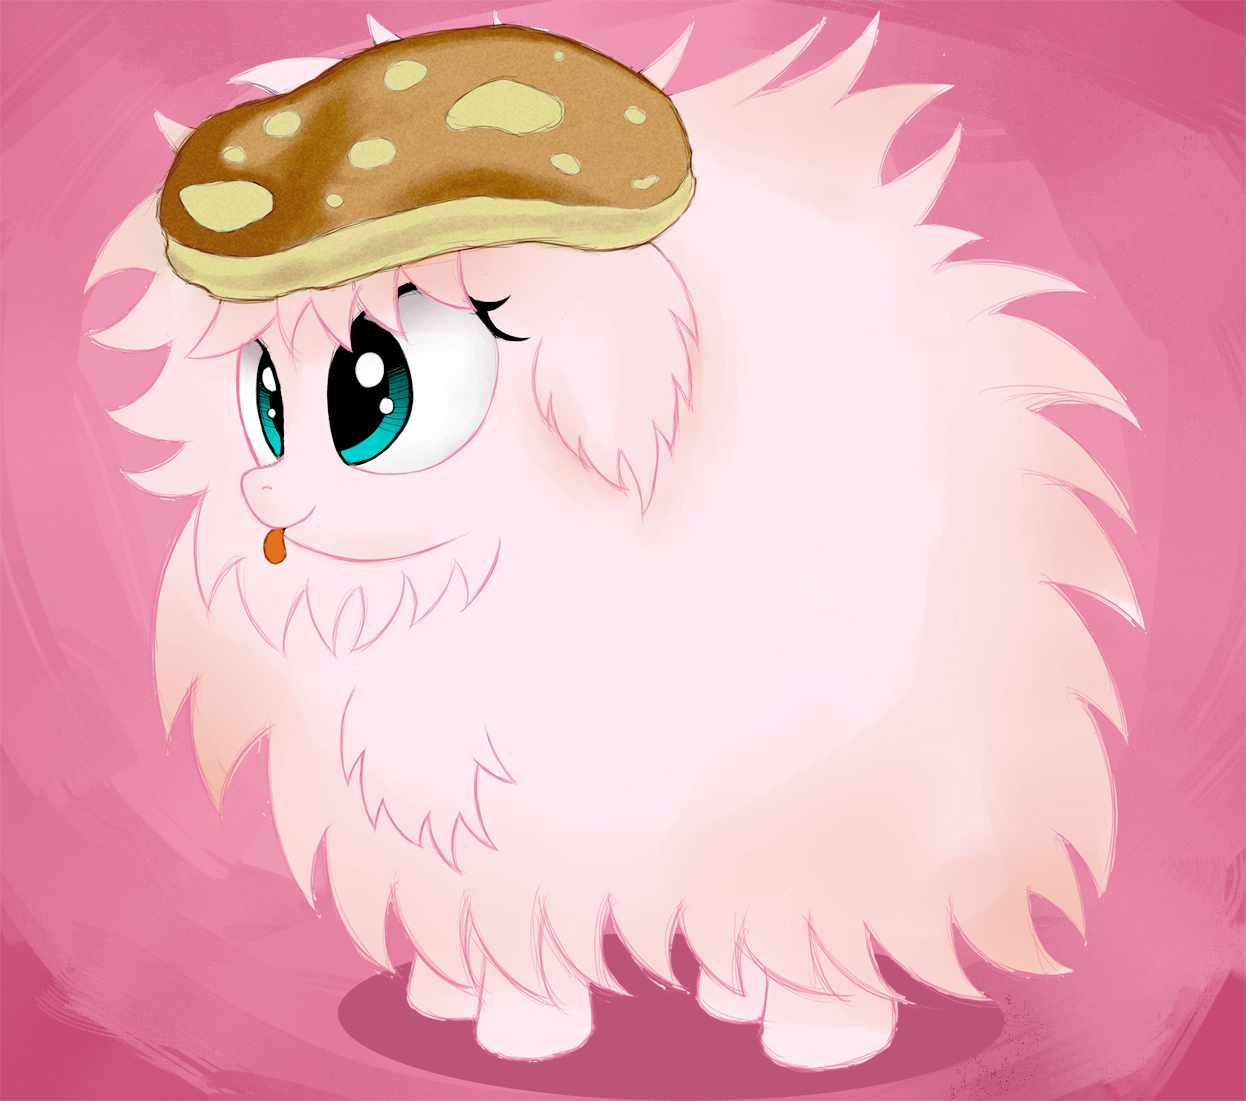 My Little Pony Equestria Girl Wallpaper Hd Fluffle Puff Images Pancake Fluffle Puff Hd Wallpaper And